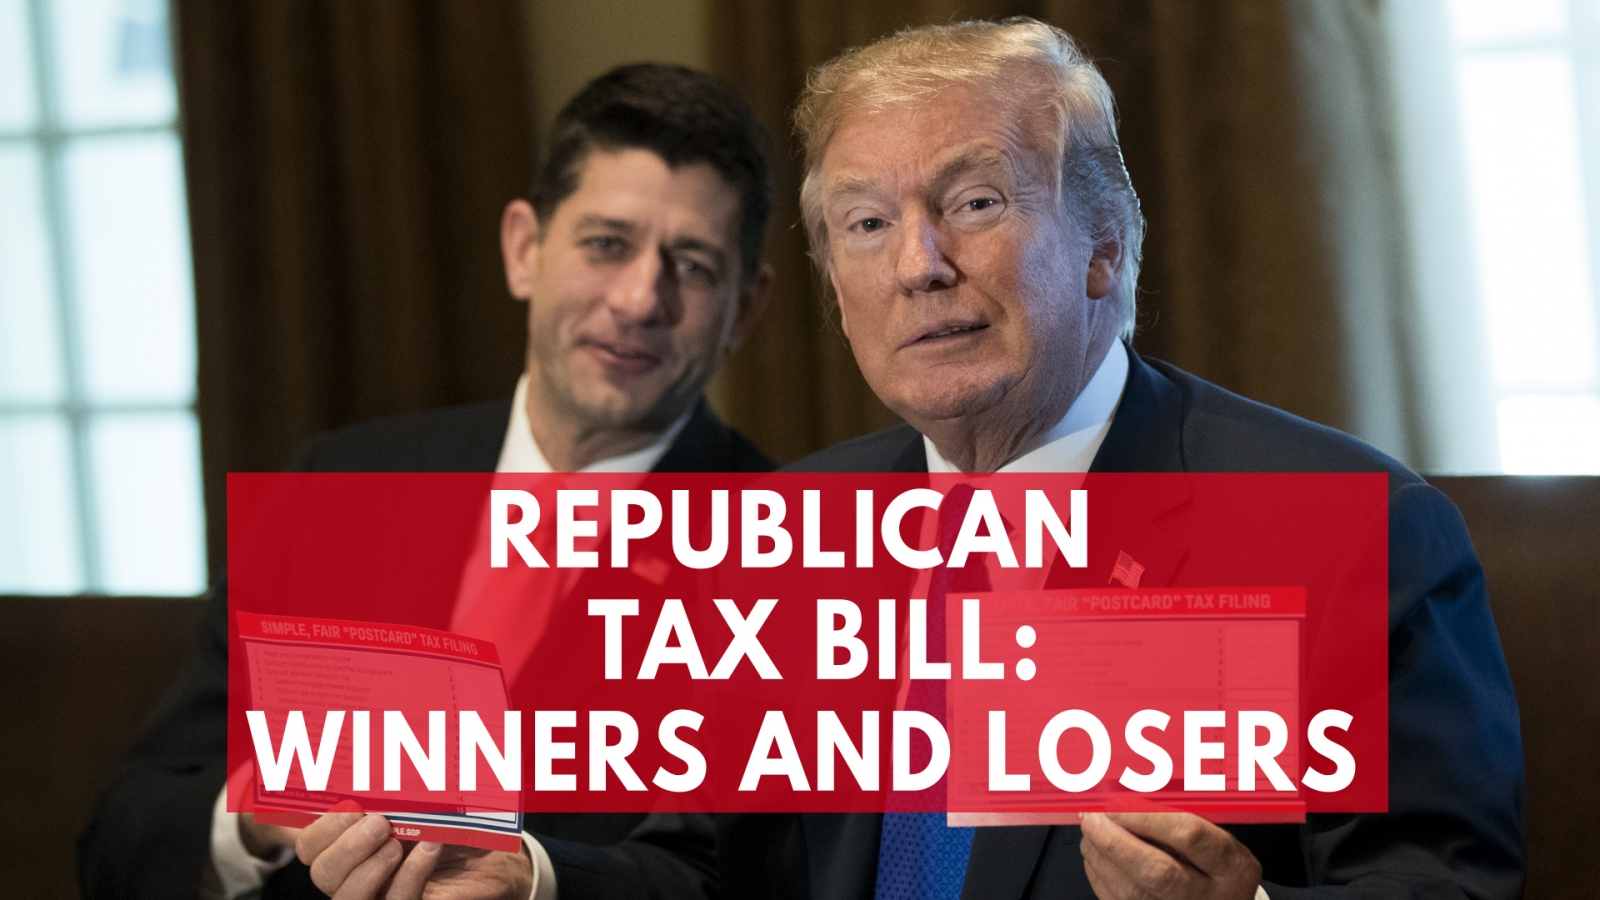 republican-tax-bill-winners-and-losers